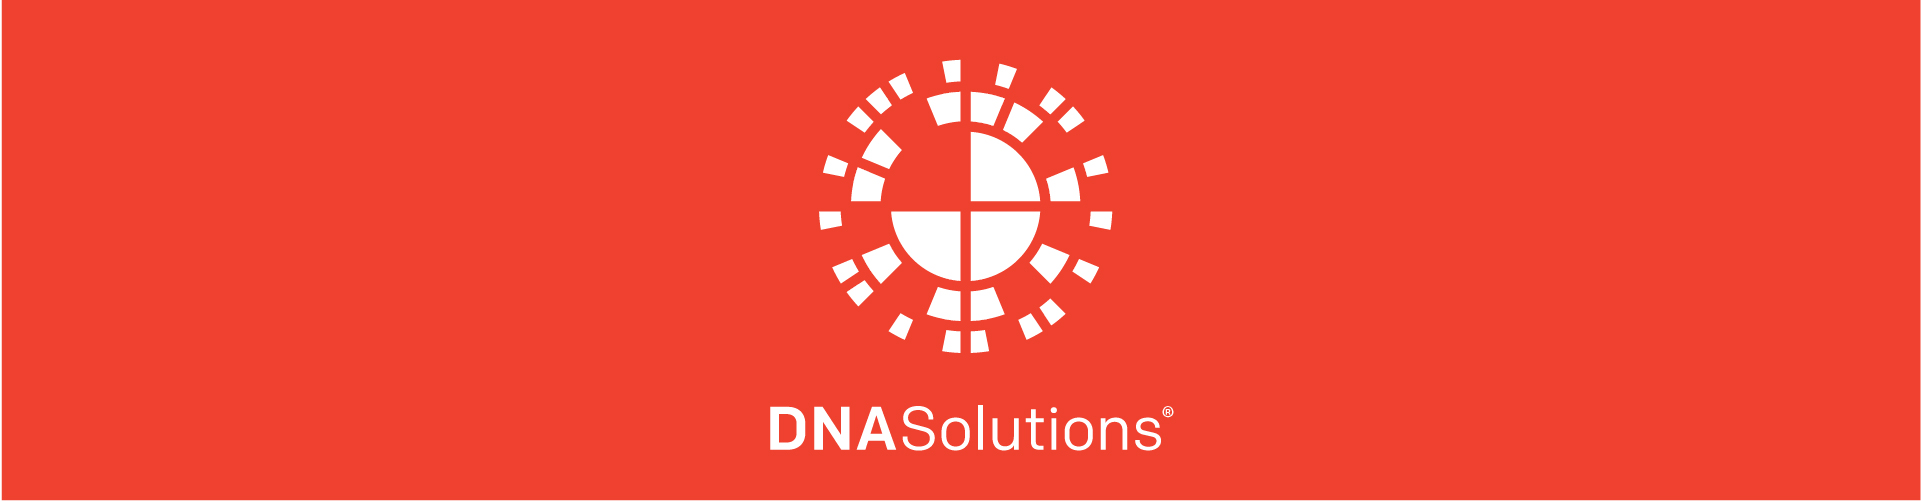 Homepage Slider DNA Solutions Logo Red Background